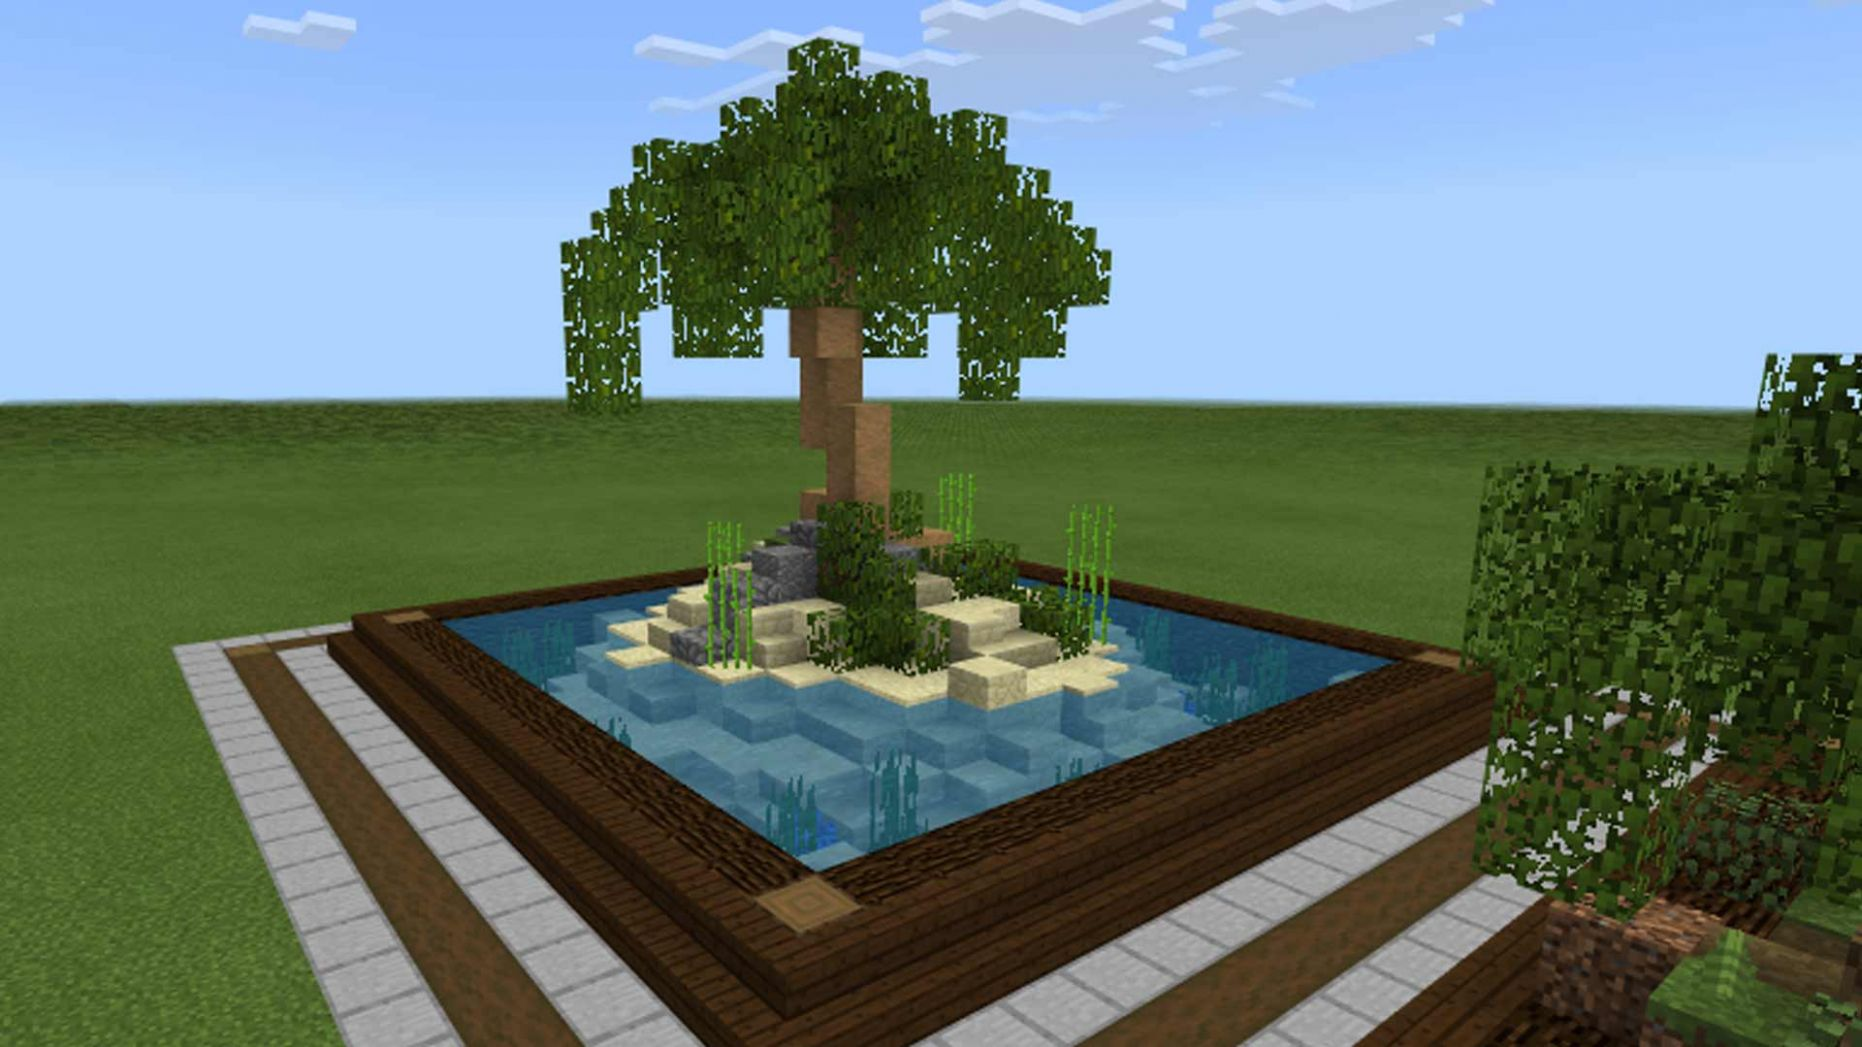 Minecraft Landscaping Ideas as a Build Style - Gamerheadquarters - minecraft garden ideas xbox